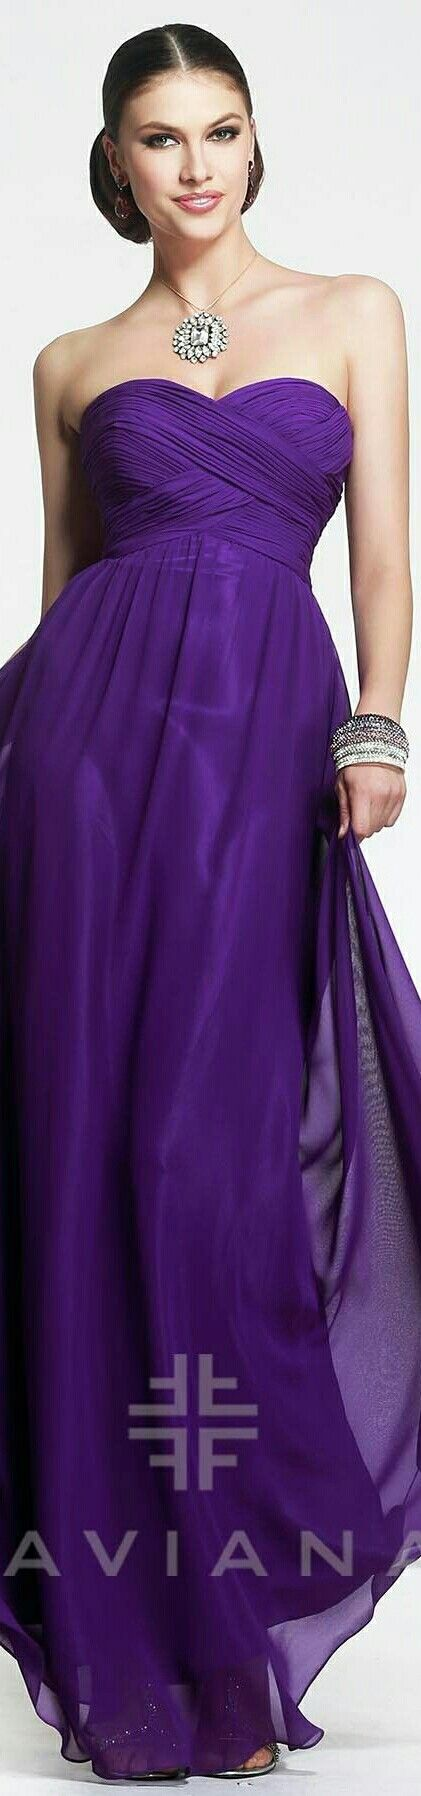 ❤🌷FAVIANA 🌷Evening/Prom Gown in Purple 🌷#7338🌷❤